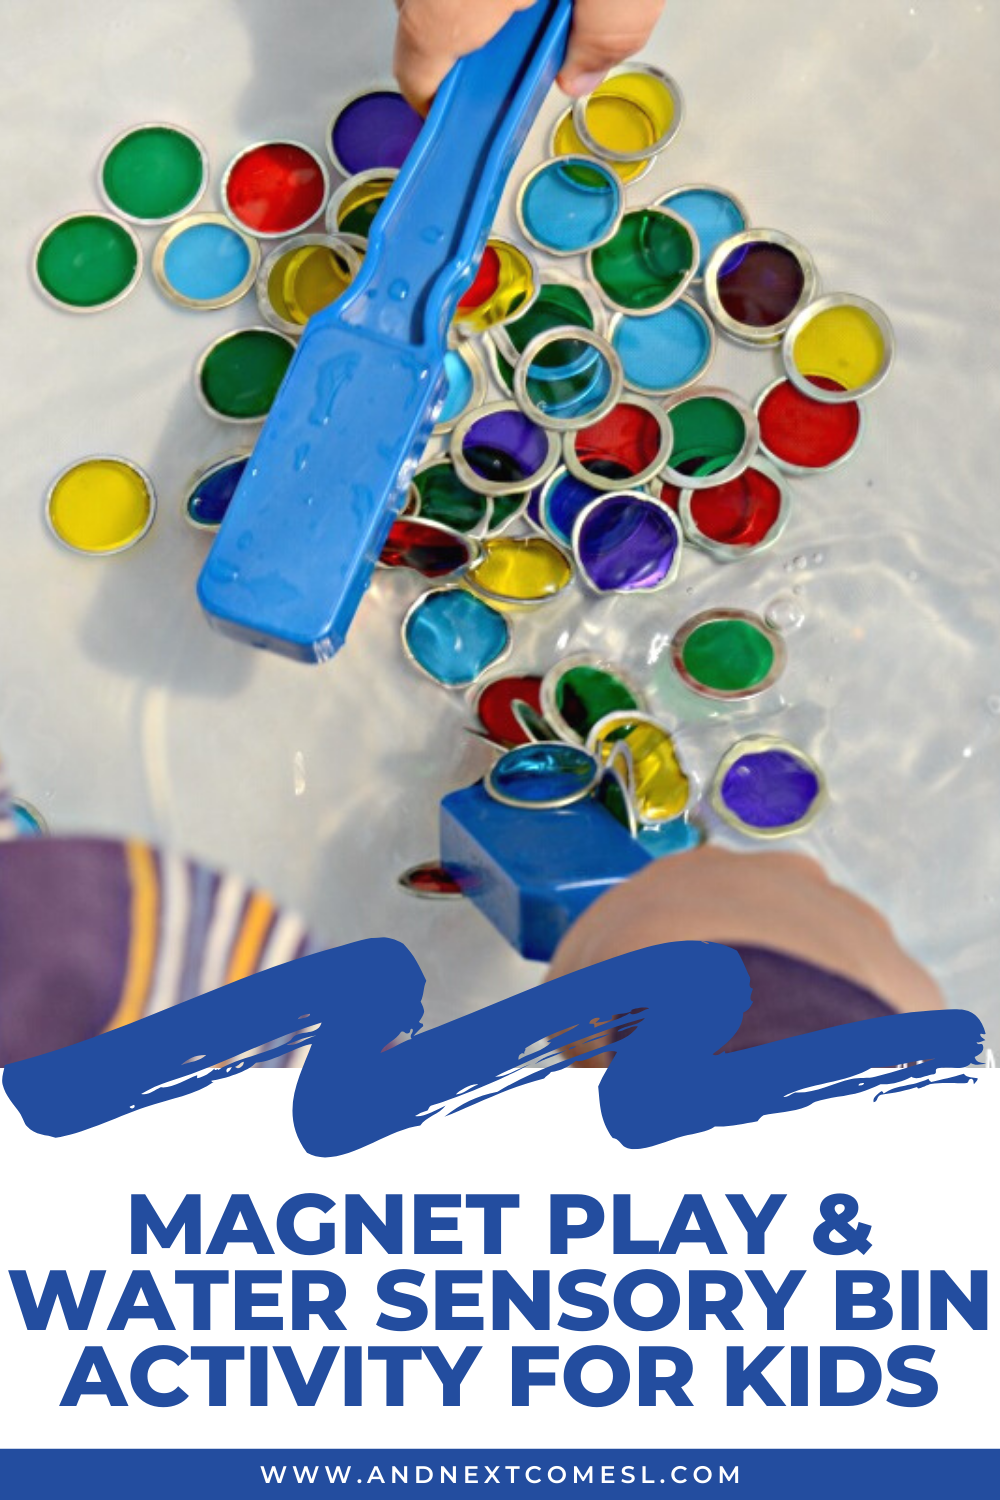 Combine magnet play with a water sensory bin to make one epic magnet sensory bin for kids!